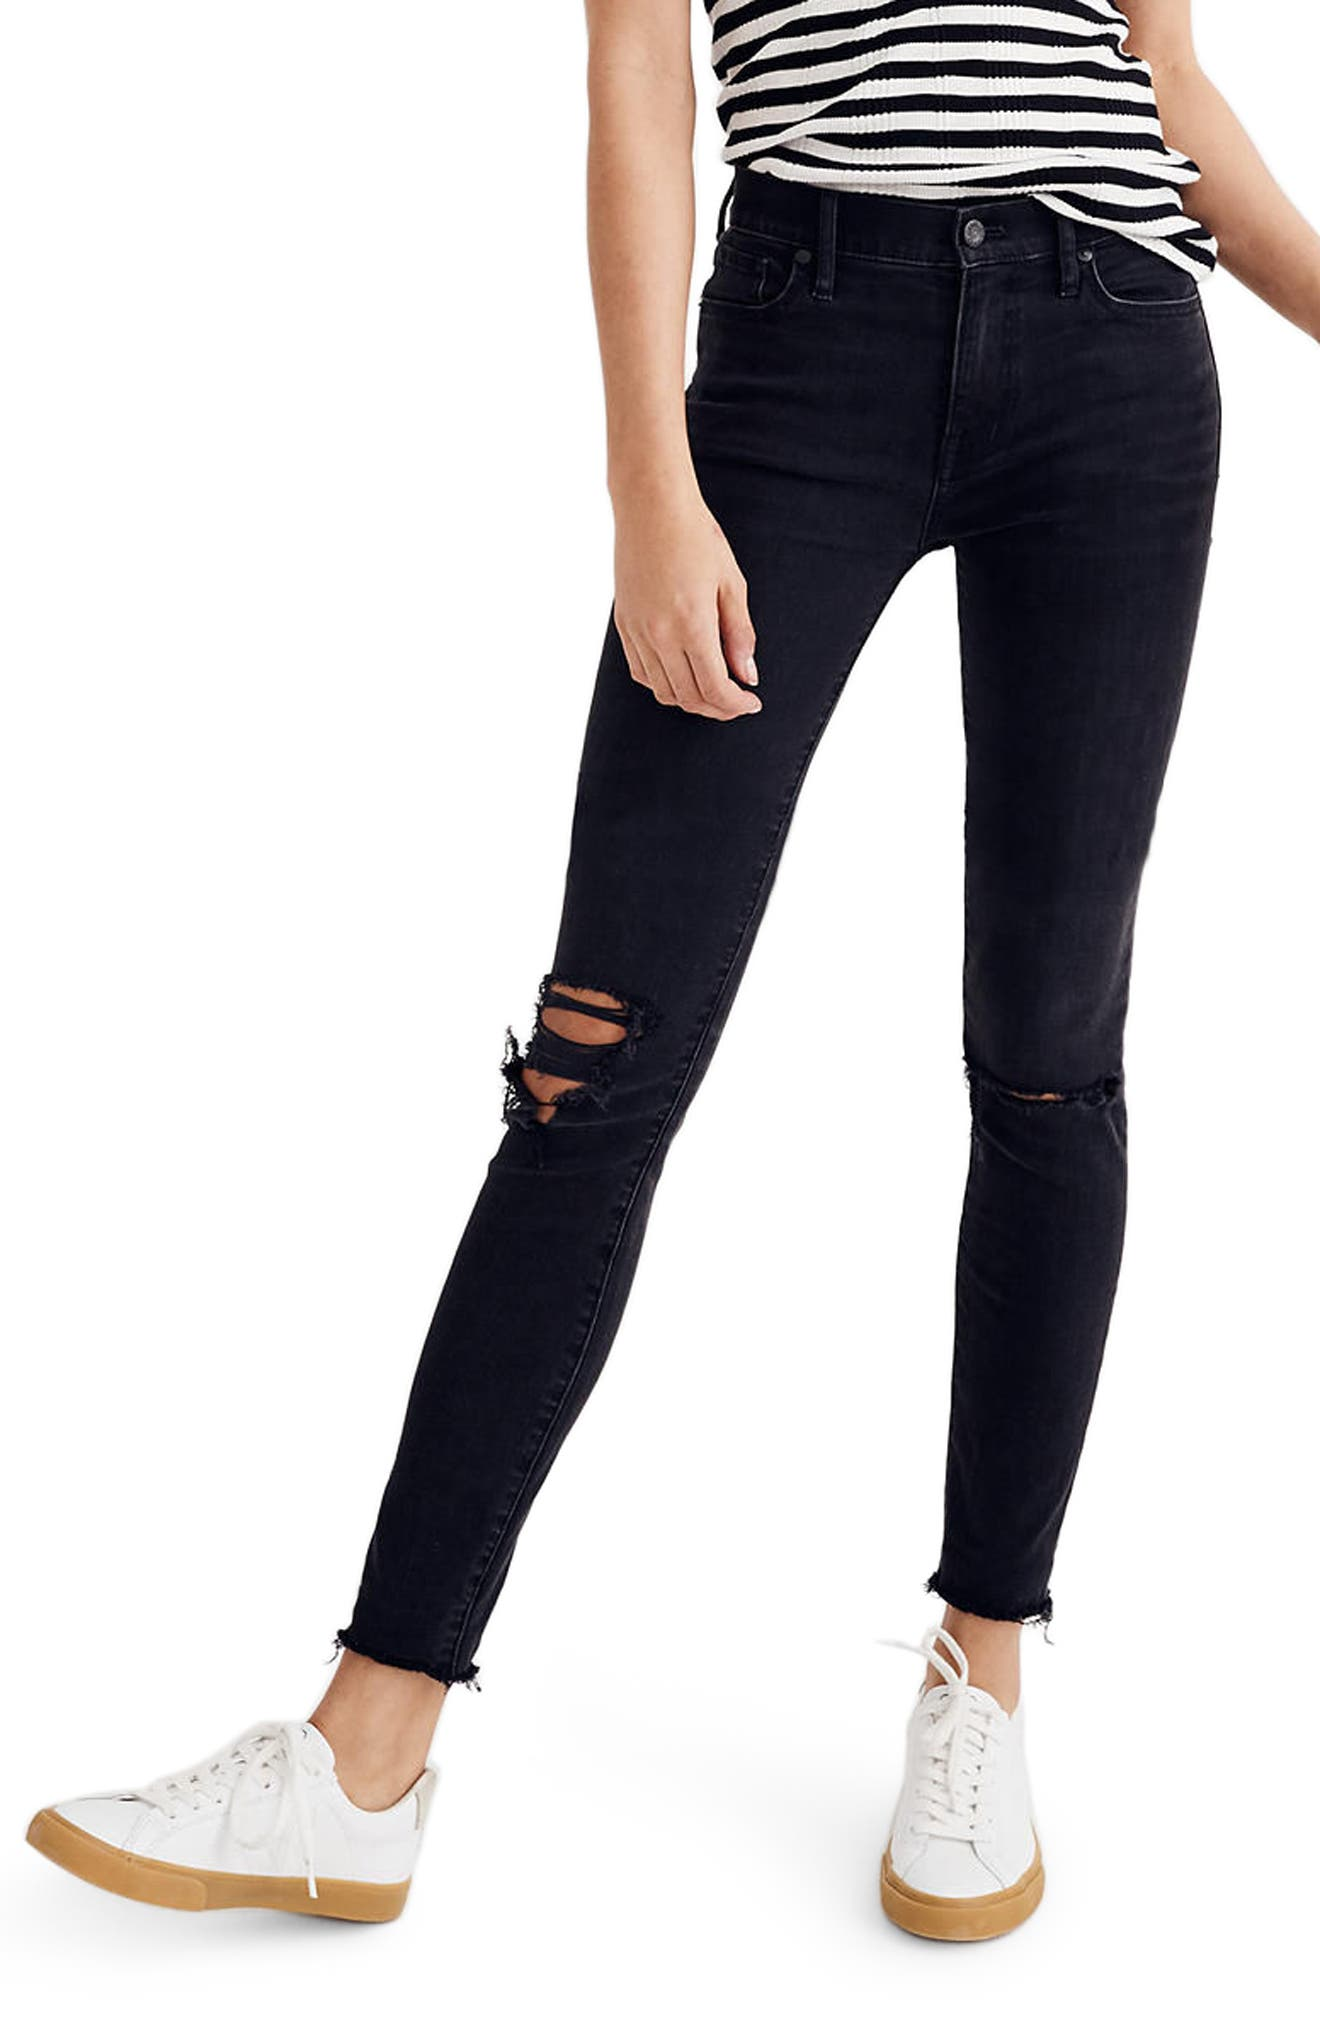 Alternate Image 1 Selected - Madewell 9-Inch High Waist Skinny Jeans (Black Sea)